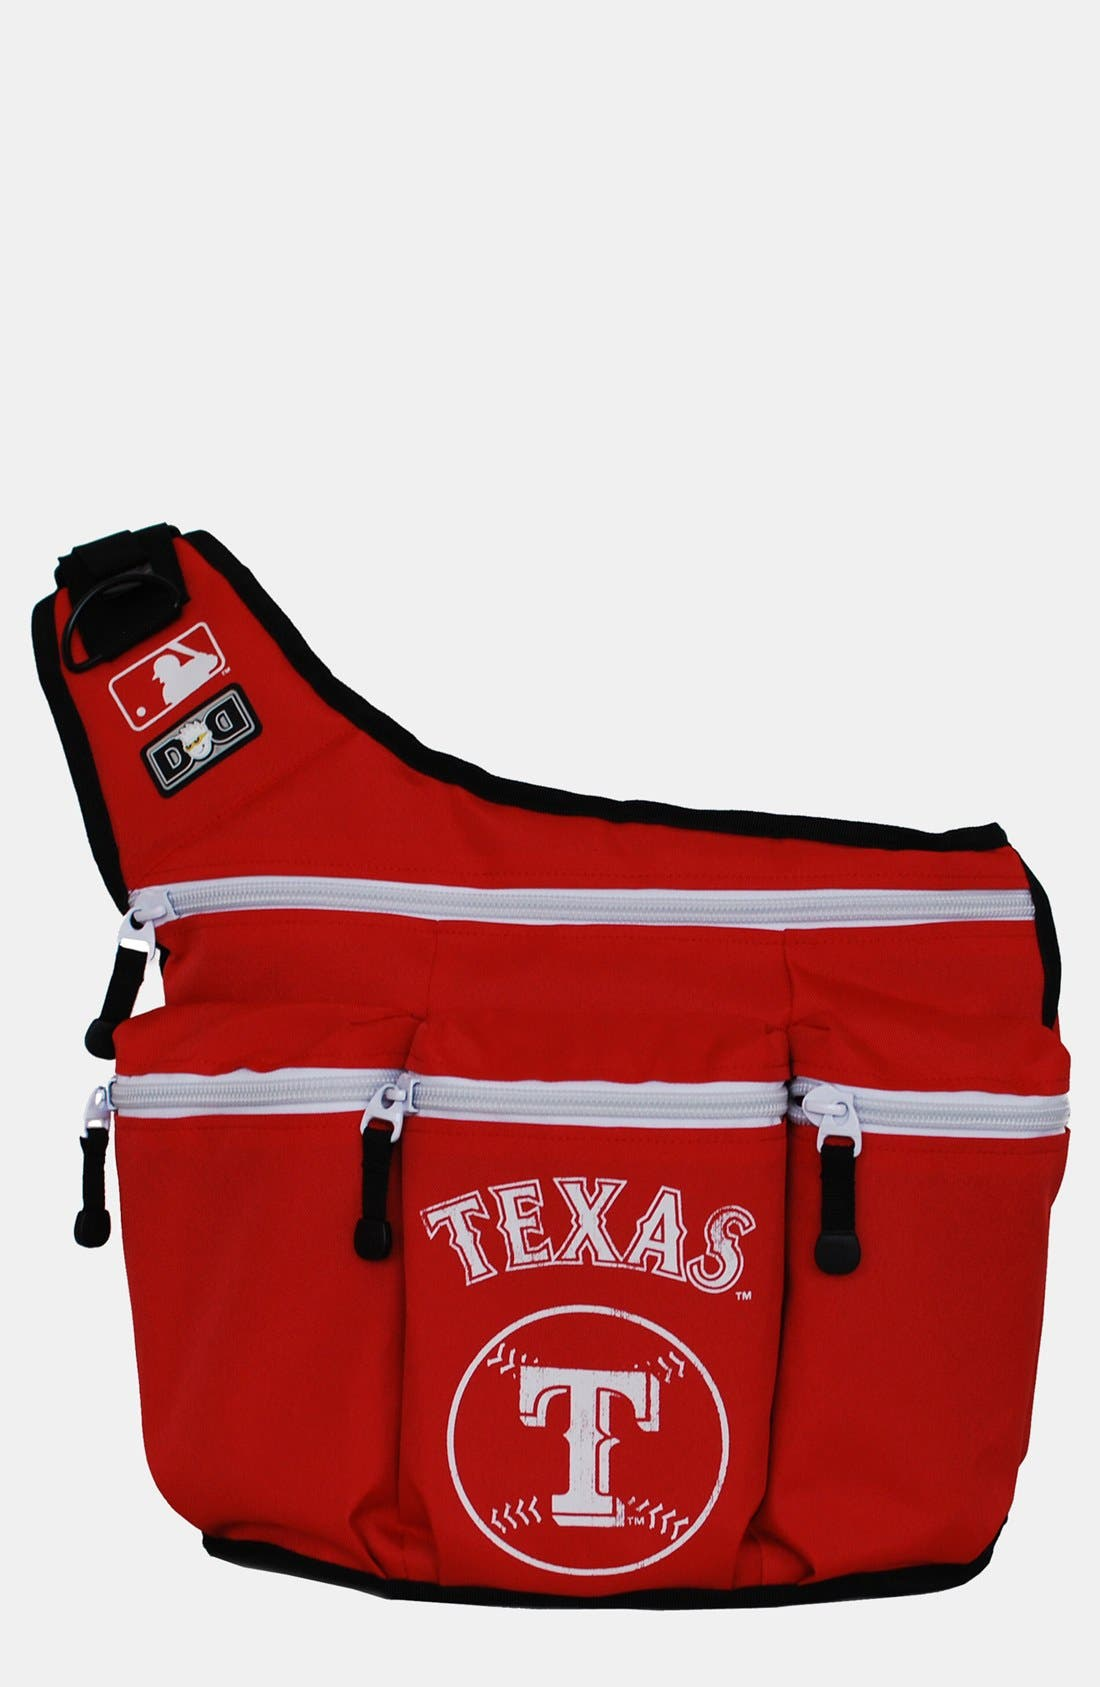 'Texas Rangers' Messenger Diaper Bag,                             Main thumbnail 1, color,